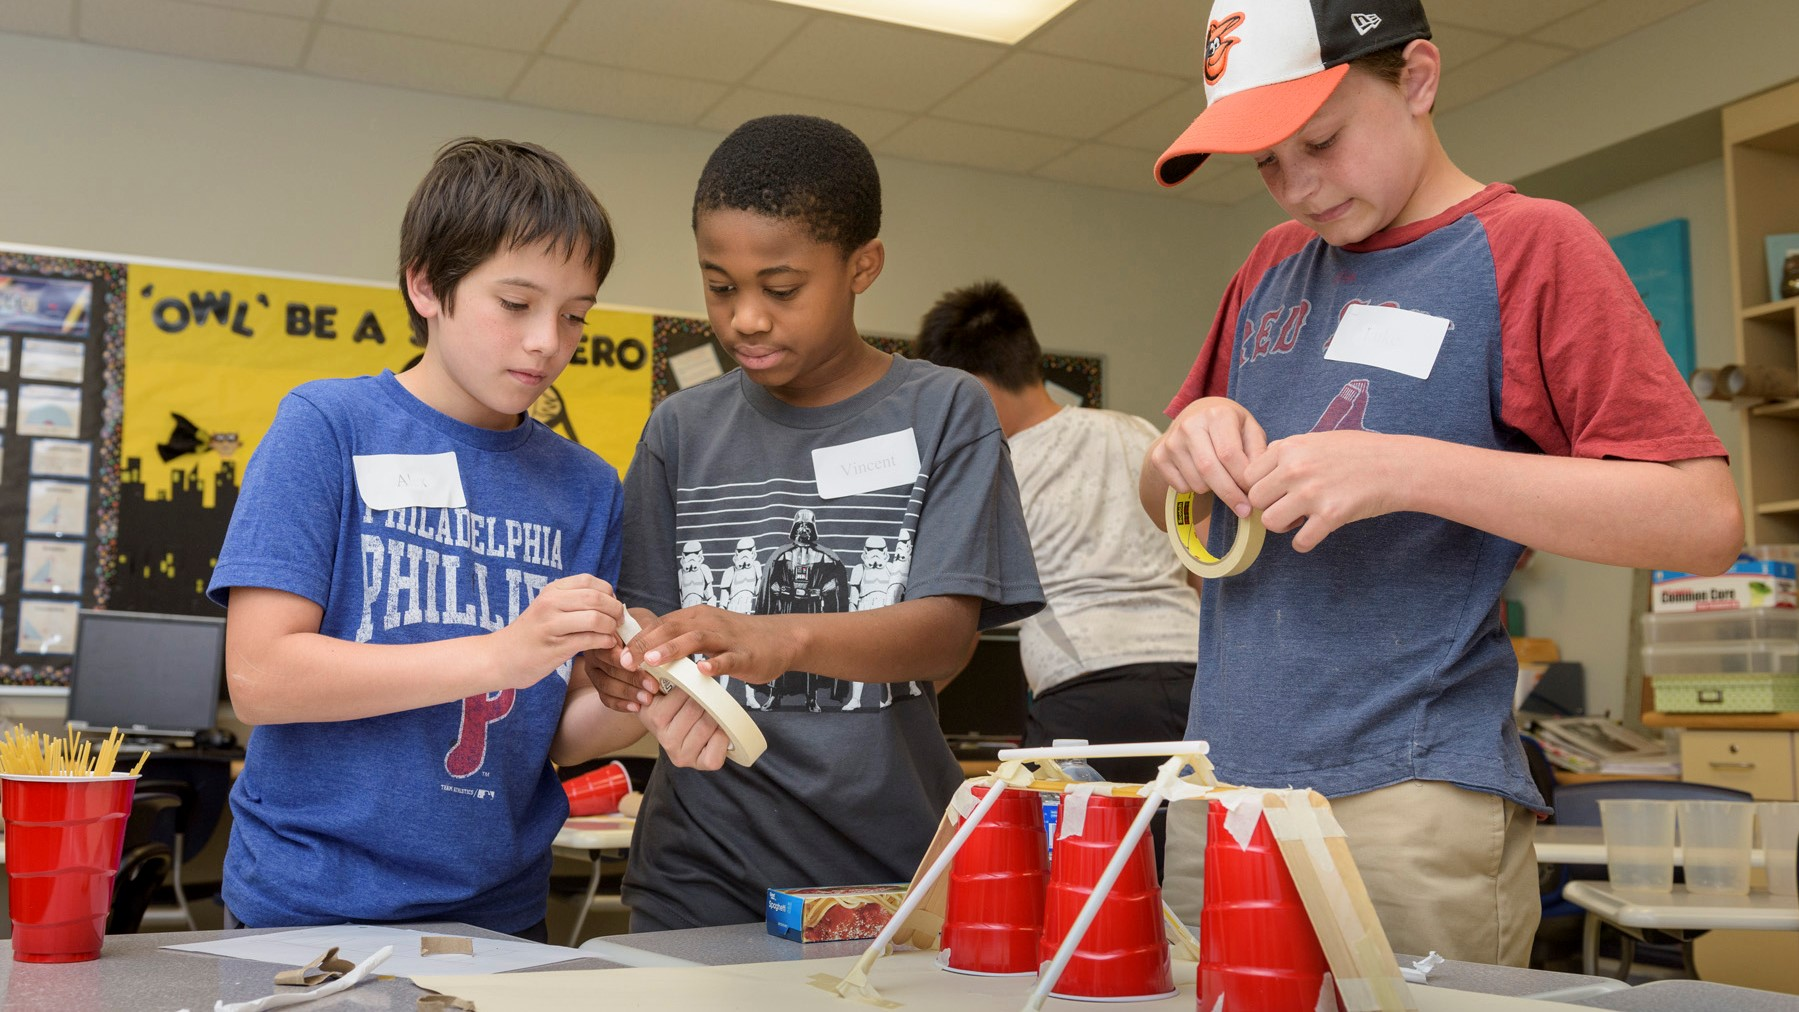 Three middle school boys engage in a STEM activity with plastic cups, spaghetti, and tape in a CEHD summer camp.